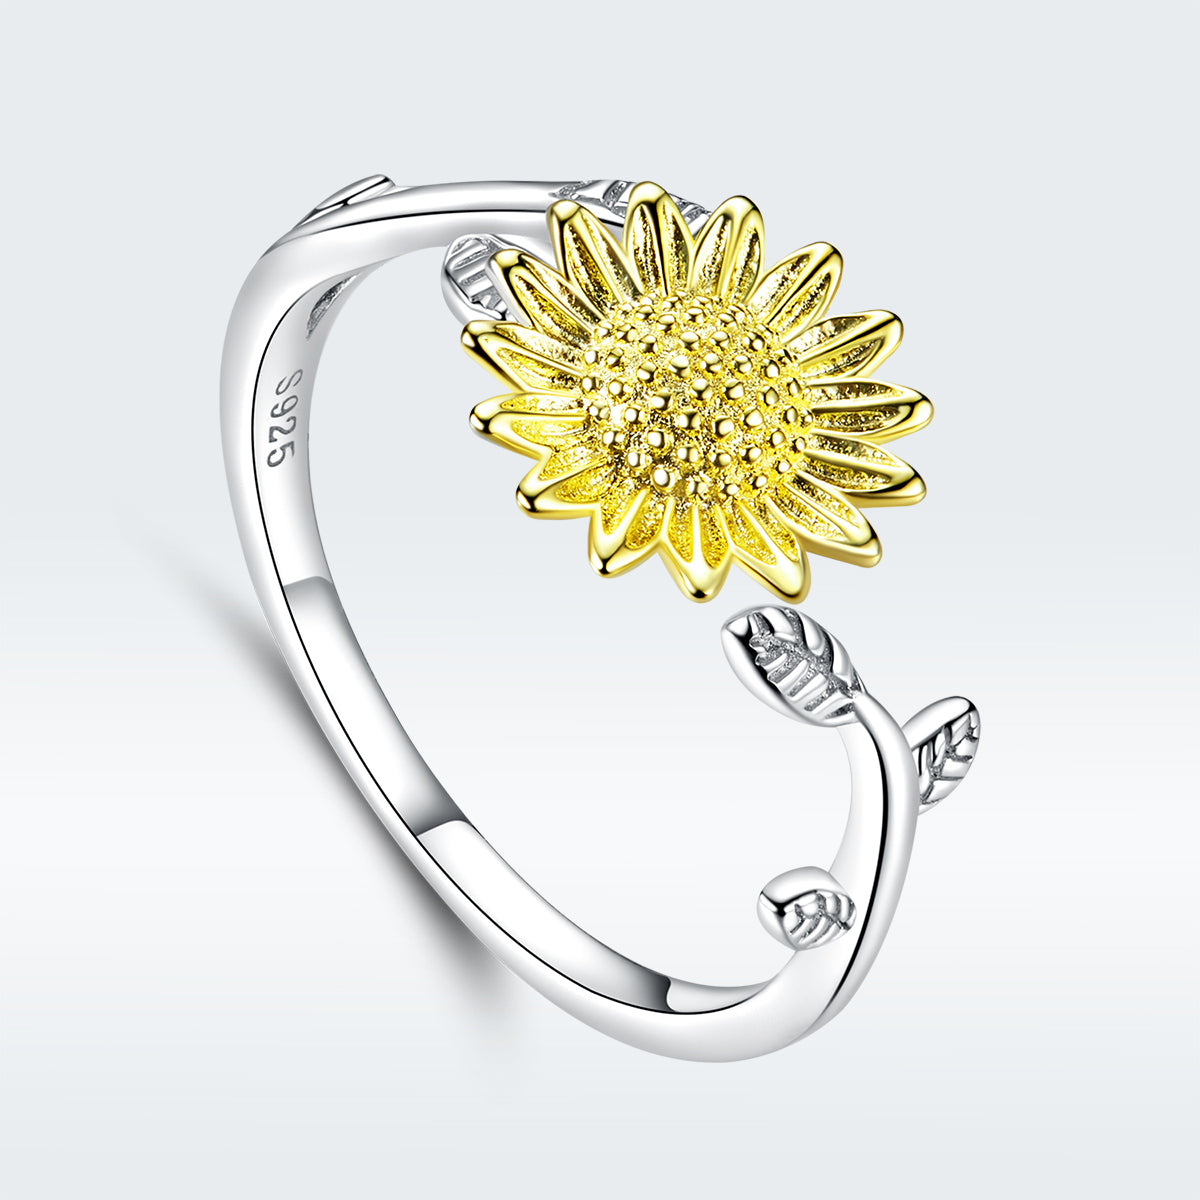 S925 sterling silver sunflower ring color separation plating ring